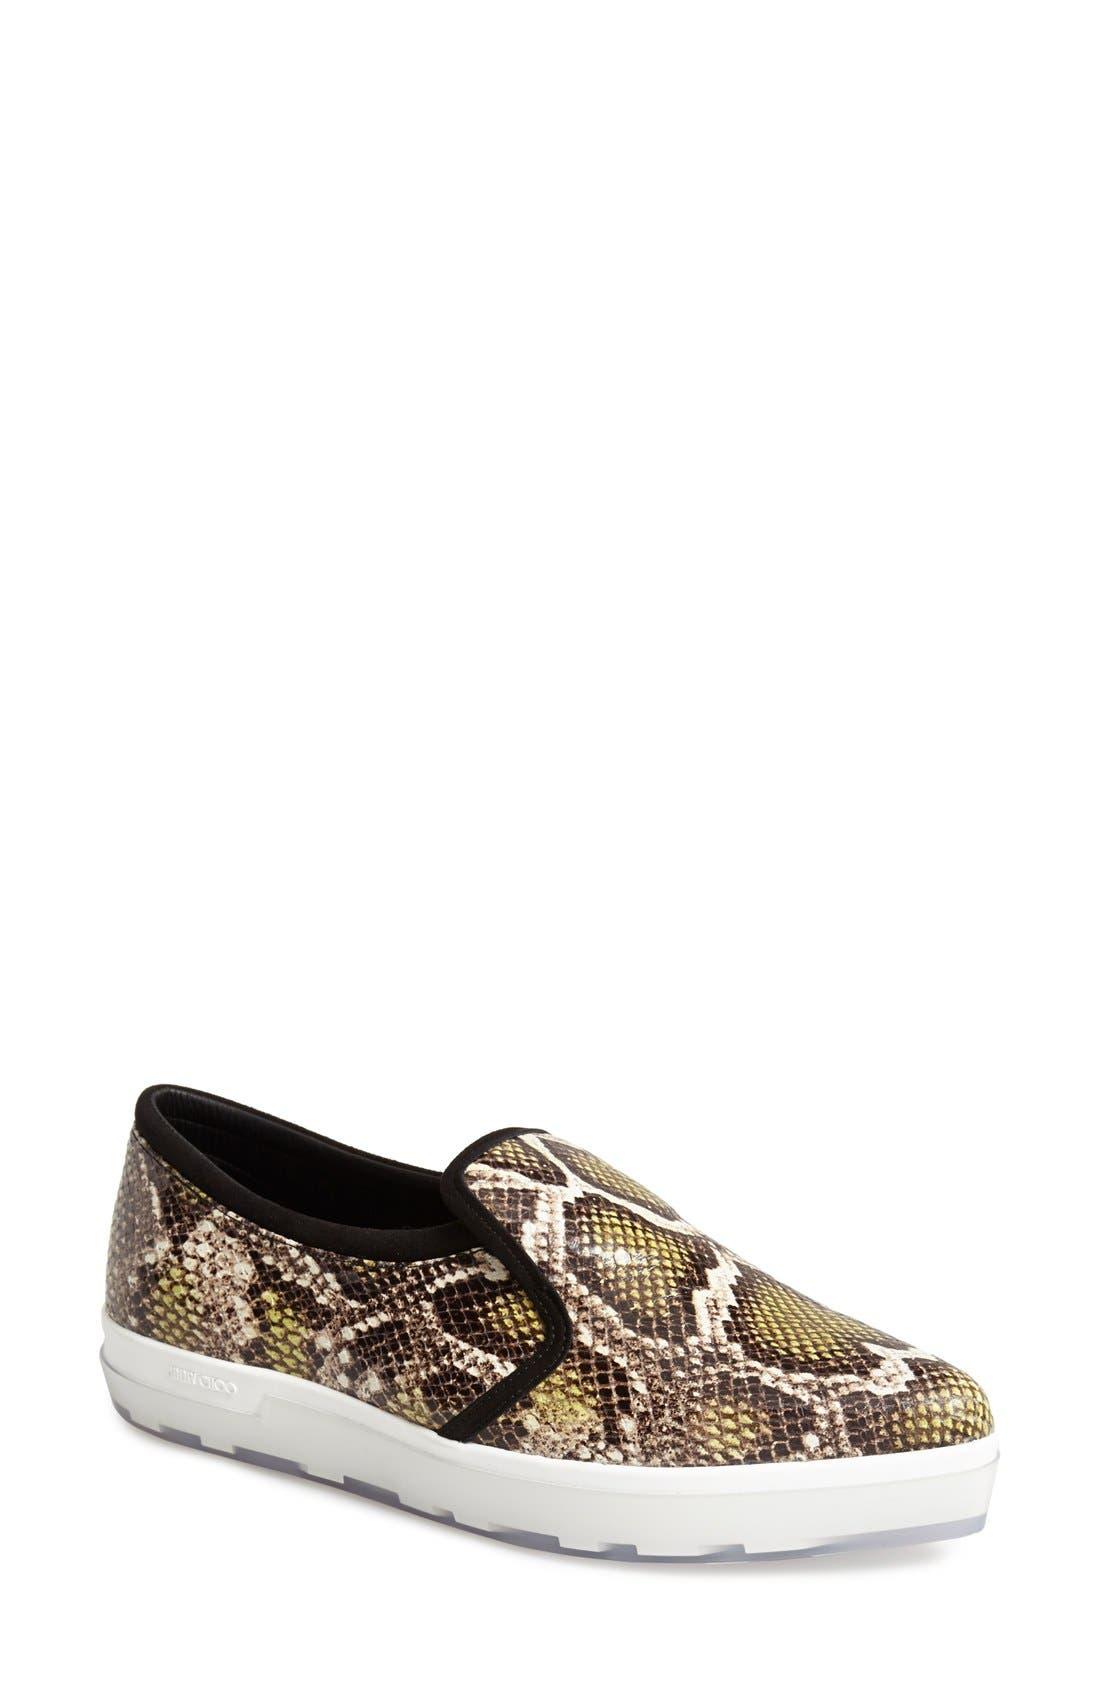 Alternate Image 1 Selected - Jimmy Choo 'Brooklyn' Slip-On Sneaker (Women)